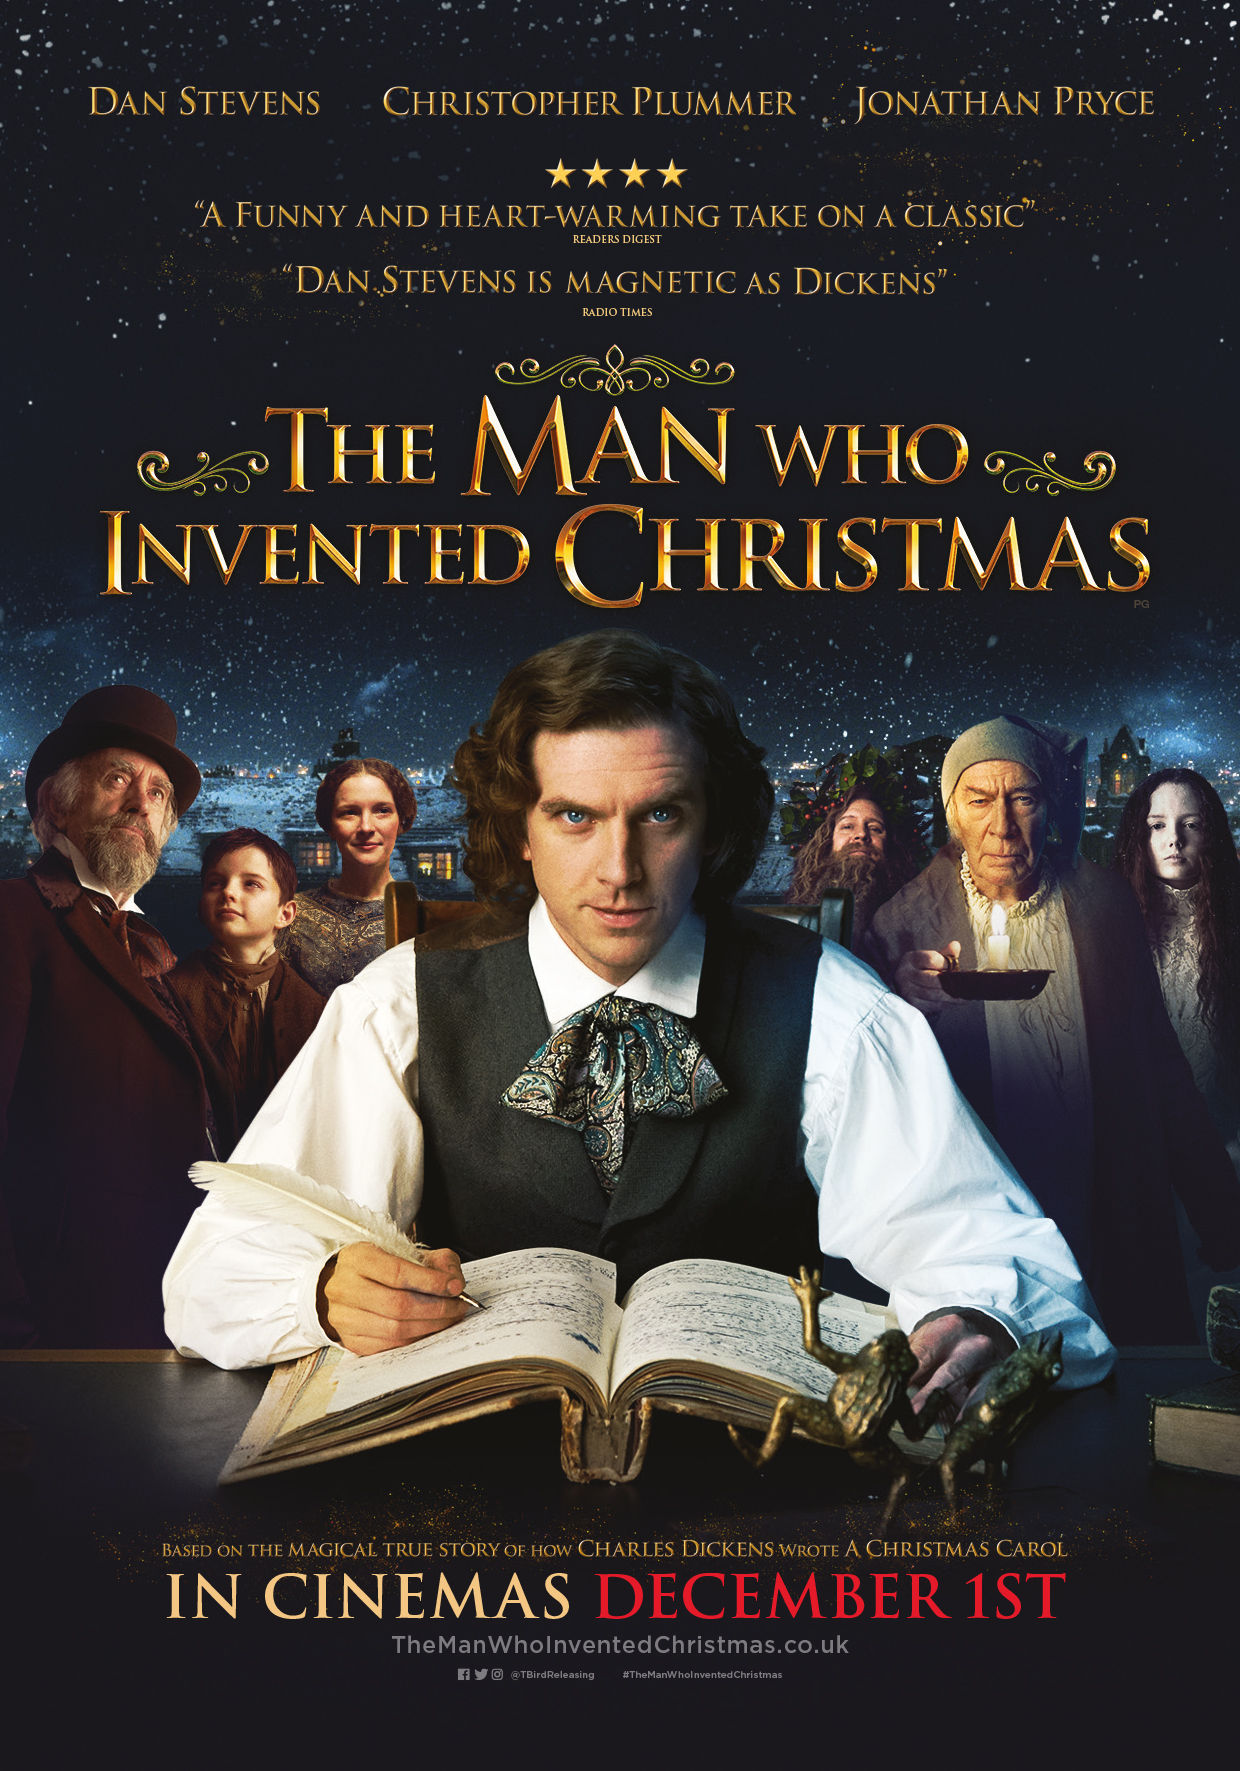 The Man Who Invented Christmas Open In Cinemas December 1st